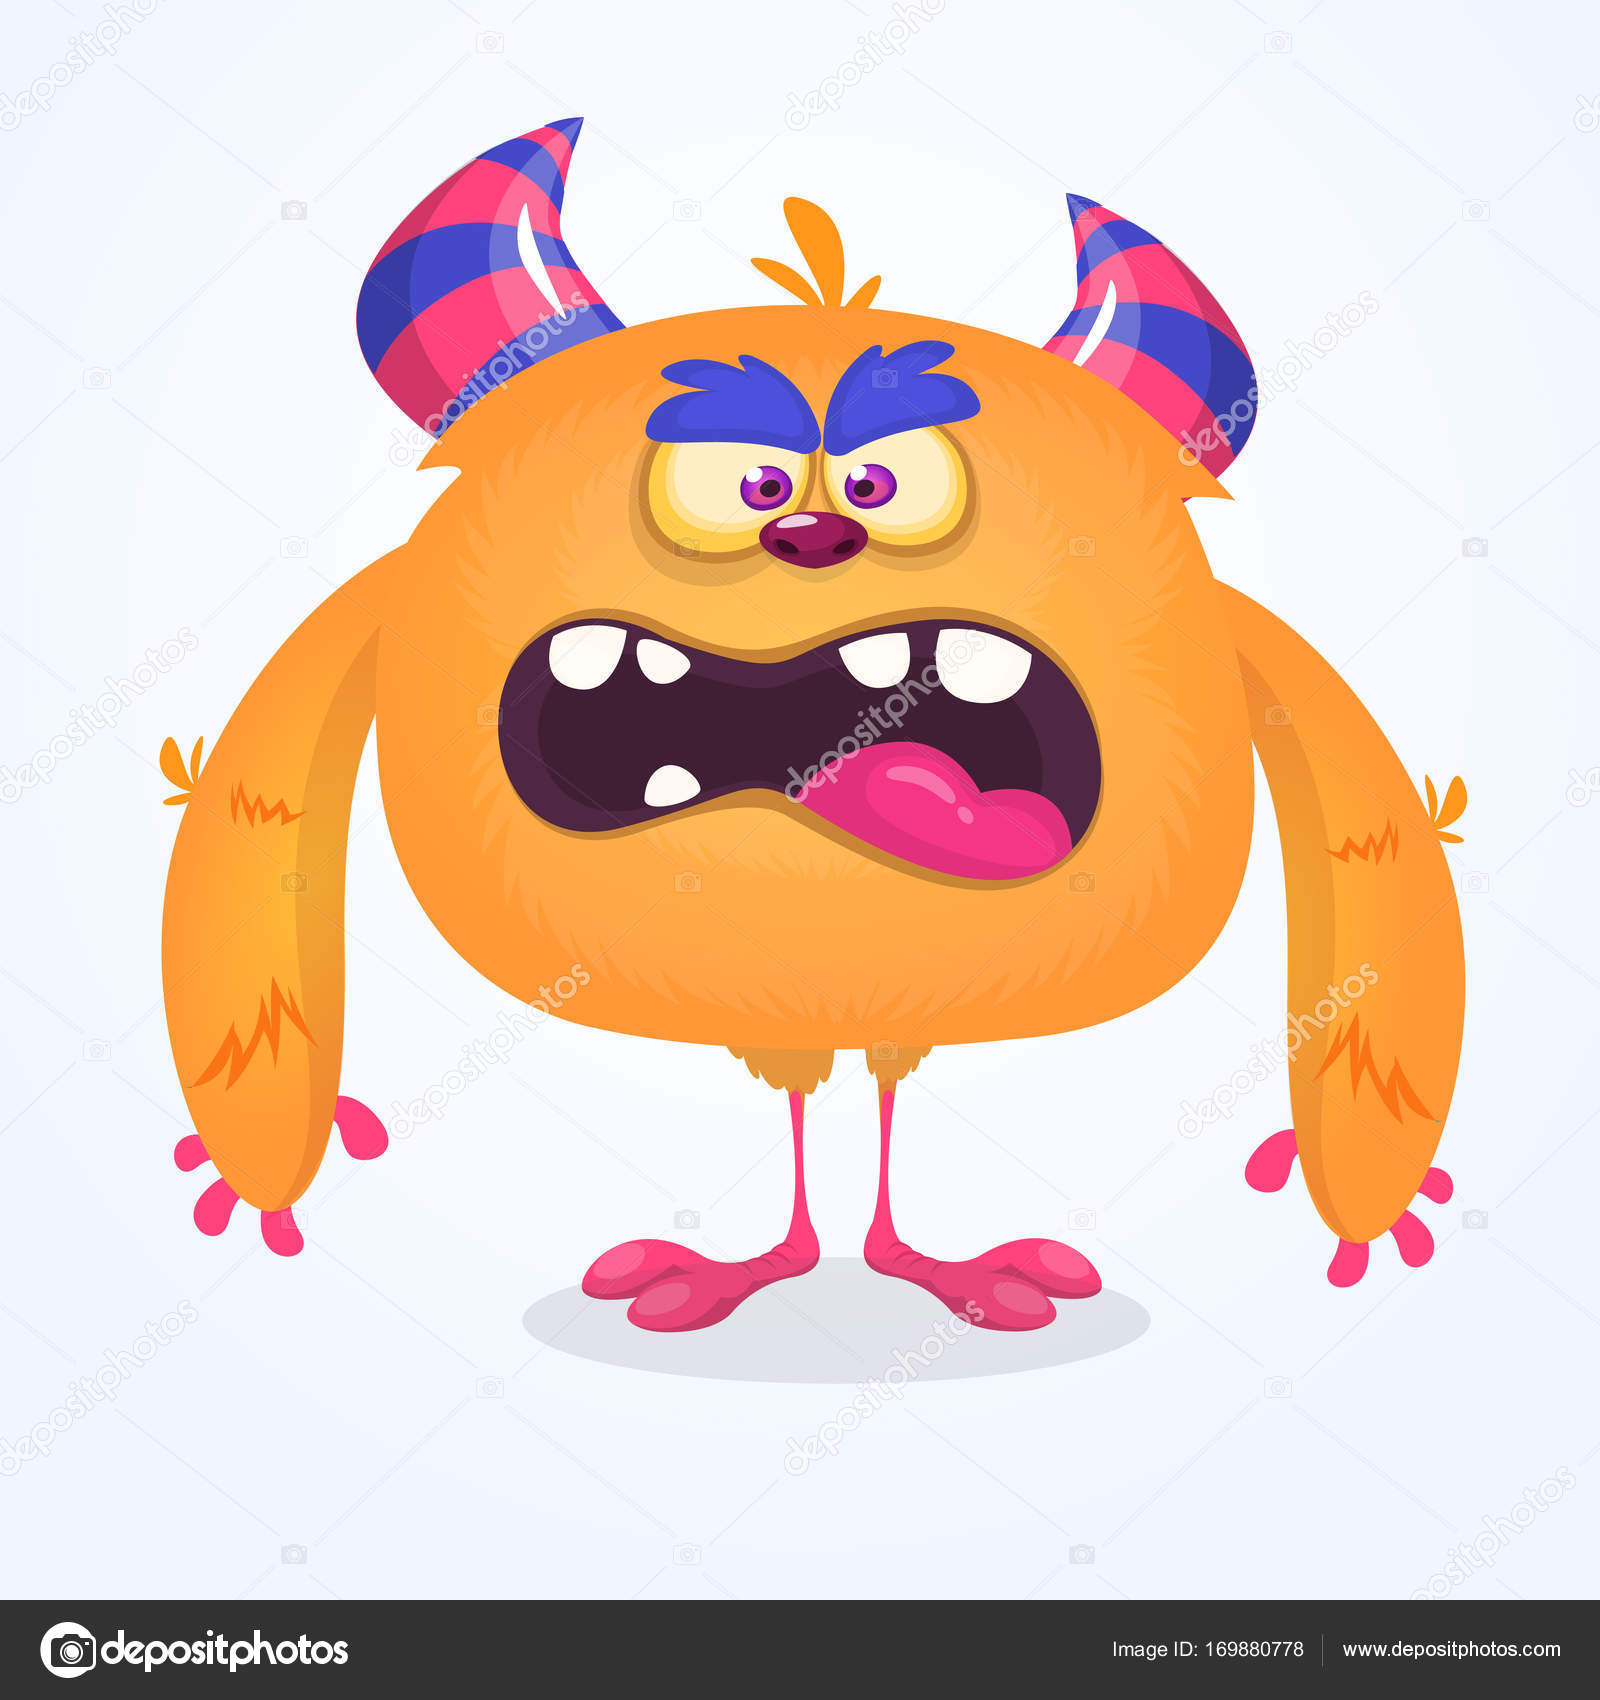 cute cartoon monster. vector furry orange monster character with